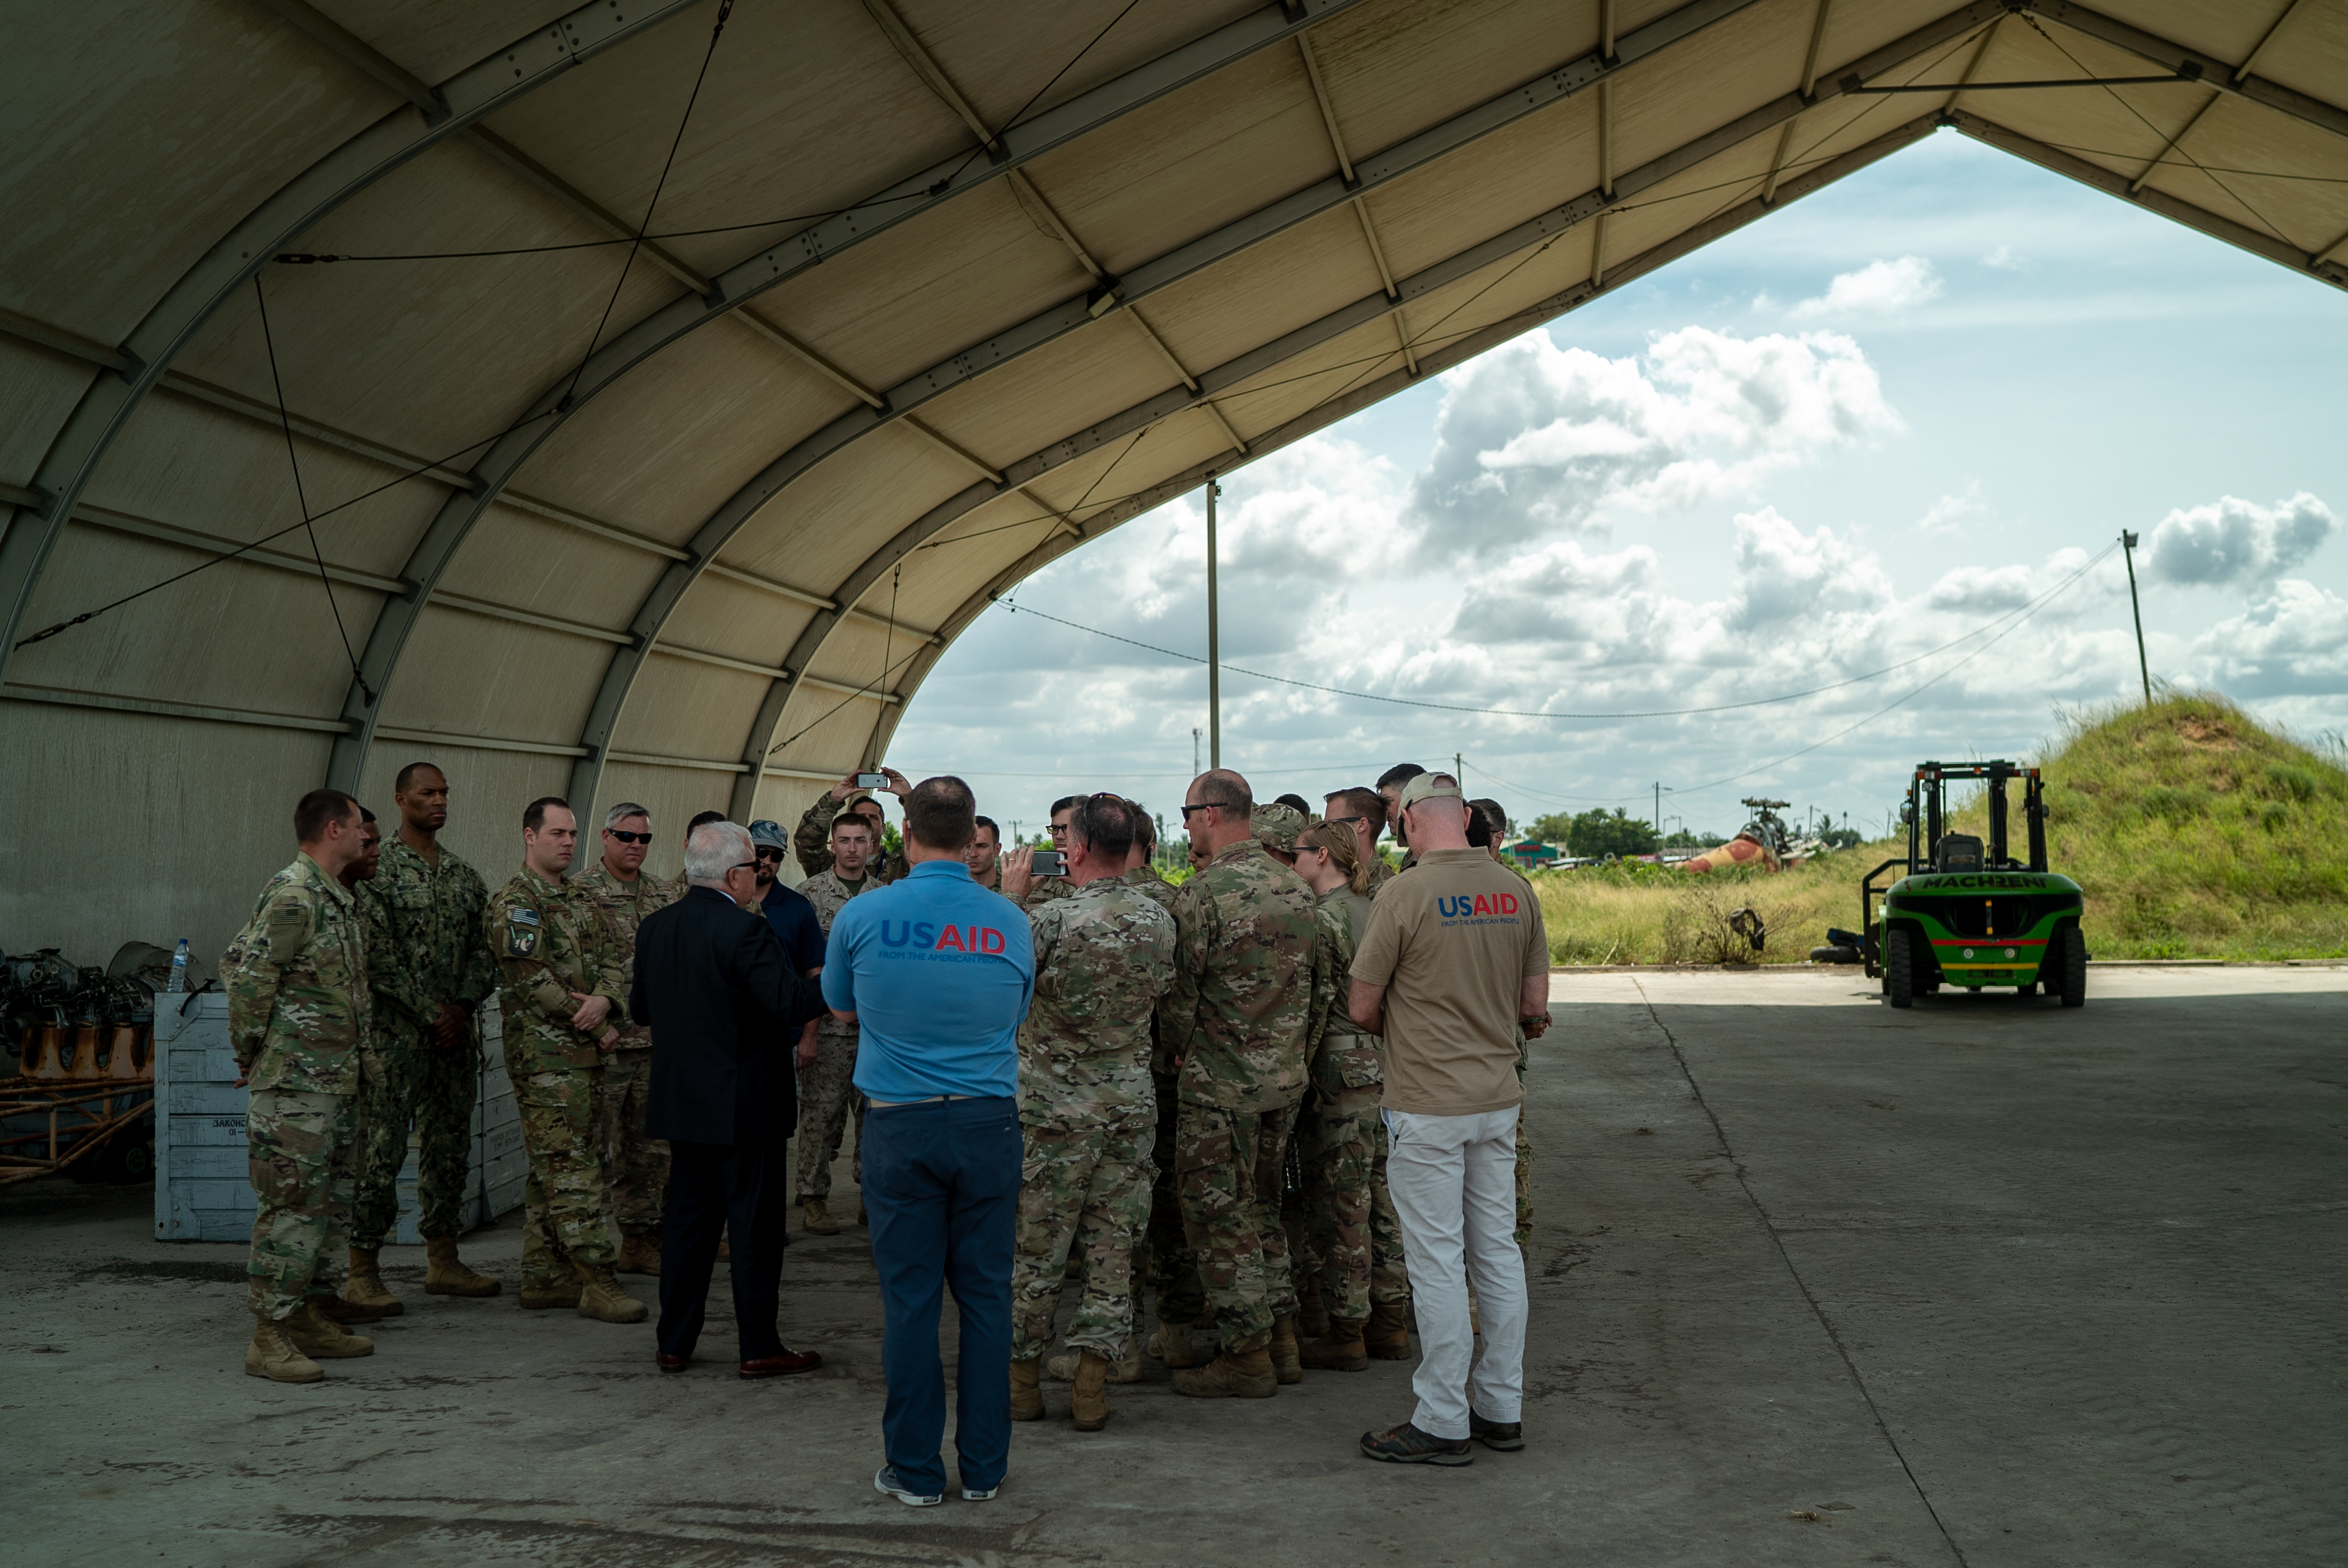 Dennis Walter Hearne, U.S. Ambassador to the Republic of Mozambique, meets with U.S. service members assigned to Combined Joint Task Force-Horn of Africa (CJTF-HOA) in Maputo, Mozambique, April 11, 2019. CJTF-HOA led U.S. Department of Defense Cyclone Idai relief efforts in support of U.S. Agency for International Development's (USAID) Disaster Assistance Response Team. The task force helped meet requirements identified by USAID assessment teams and humanitarian organizations working in the region by providing logistics support and manpower to USAID at the request of the Government of the Republic of Mozambique. (U.S. Air Force photo by Tech. Sgt. Thomas Grimes)